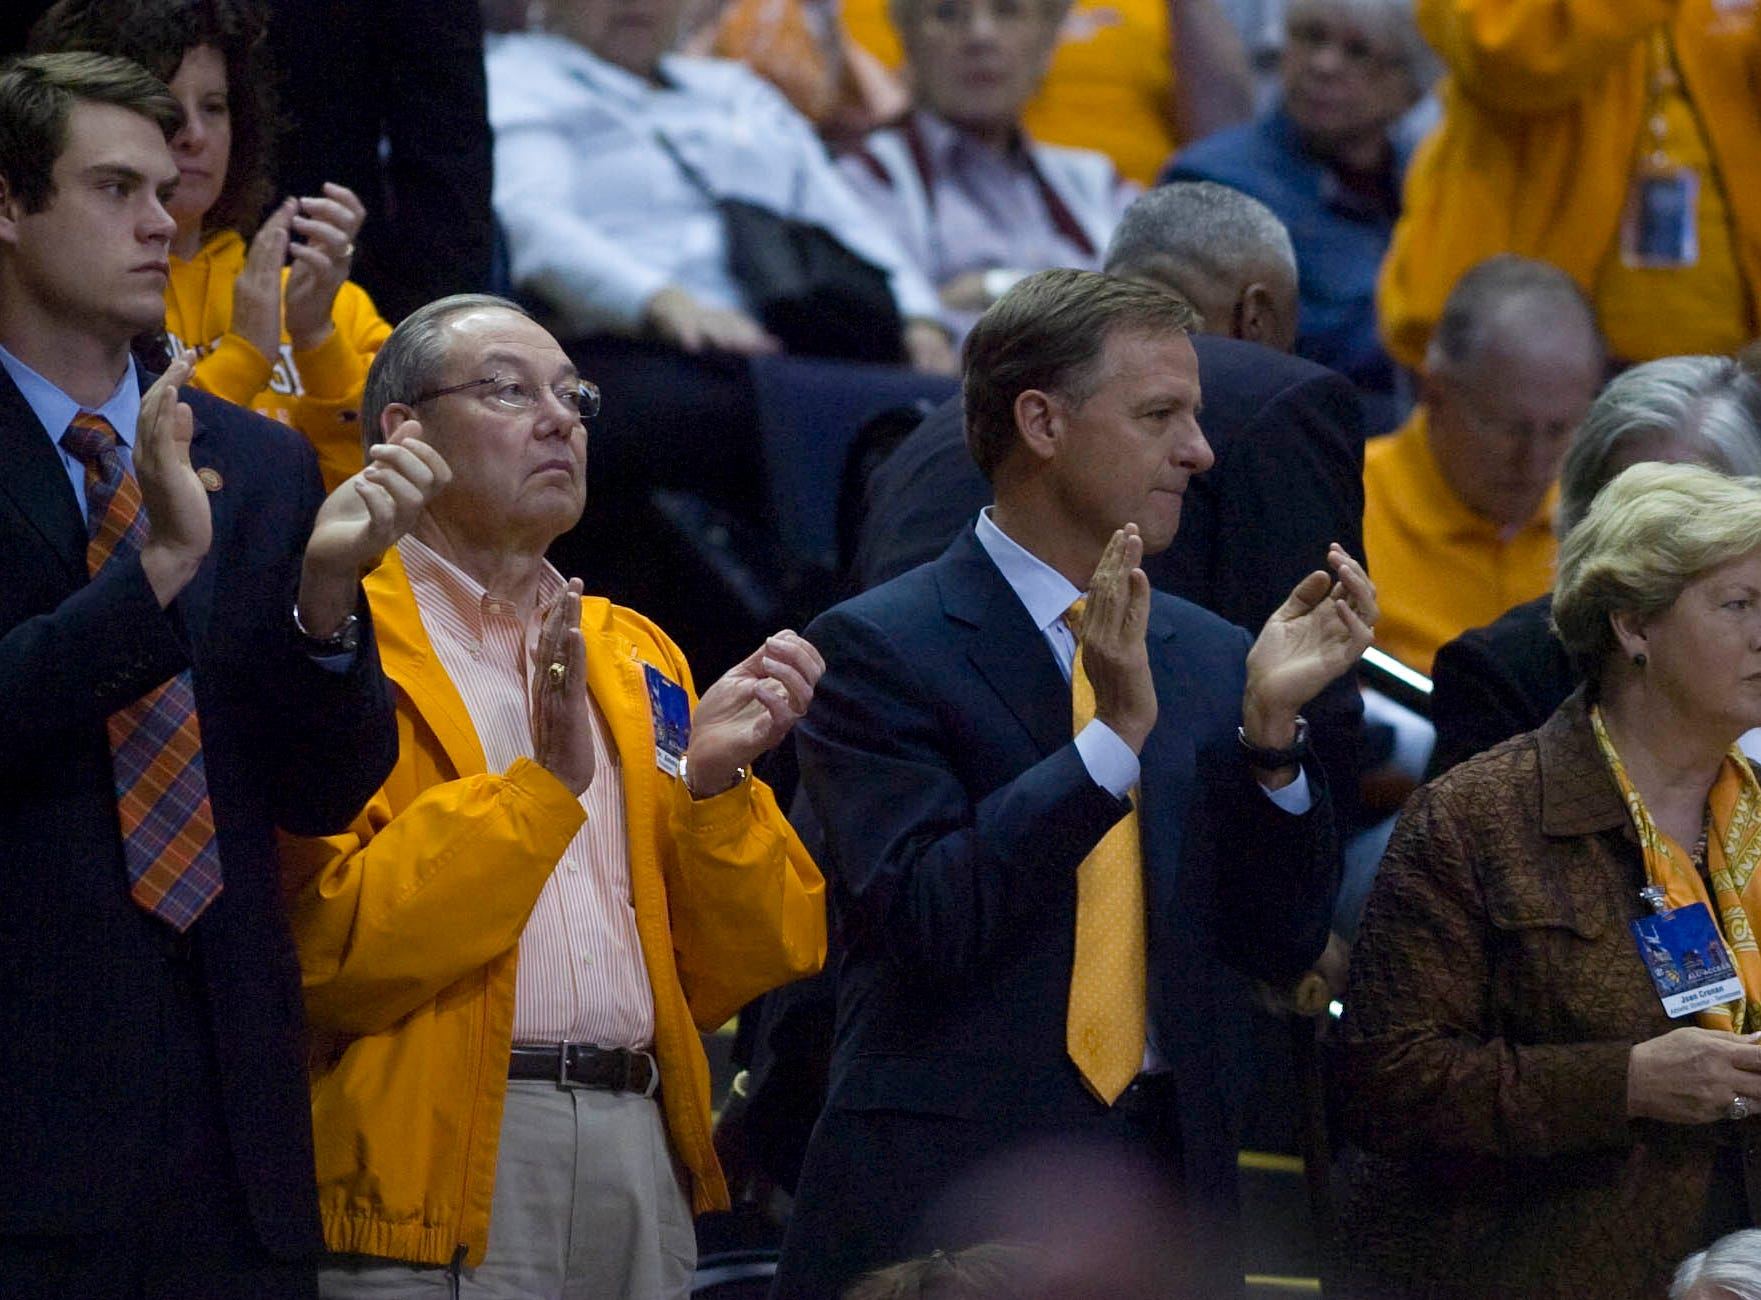 Tennessee governor Bill Haslam (second from right) sits with UT women's athletics director Joan Cronan (right) and UT Chancellor Jimmy Cheek as UT played Florida during the second round of SEC Tournament play in Nashville on Friday March 4, 2011. UT won the game 92-75.